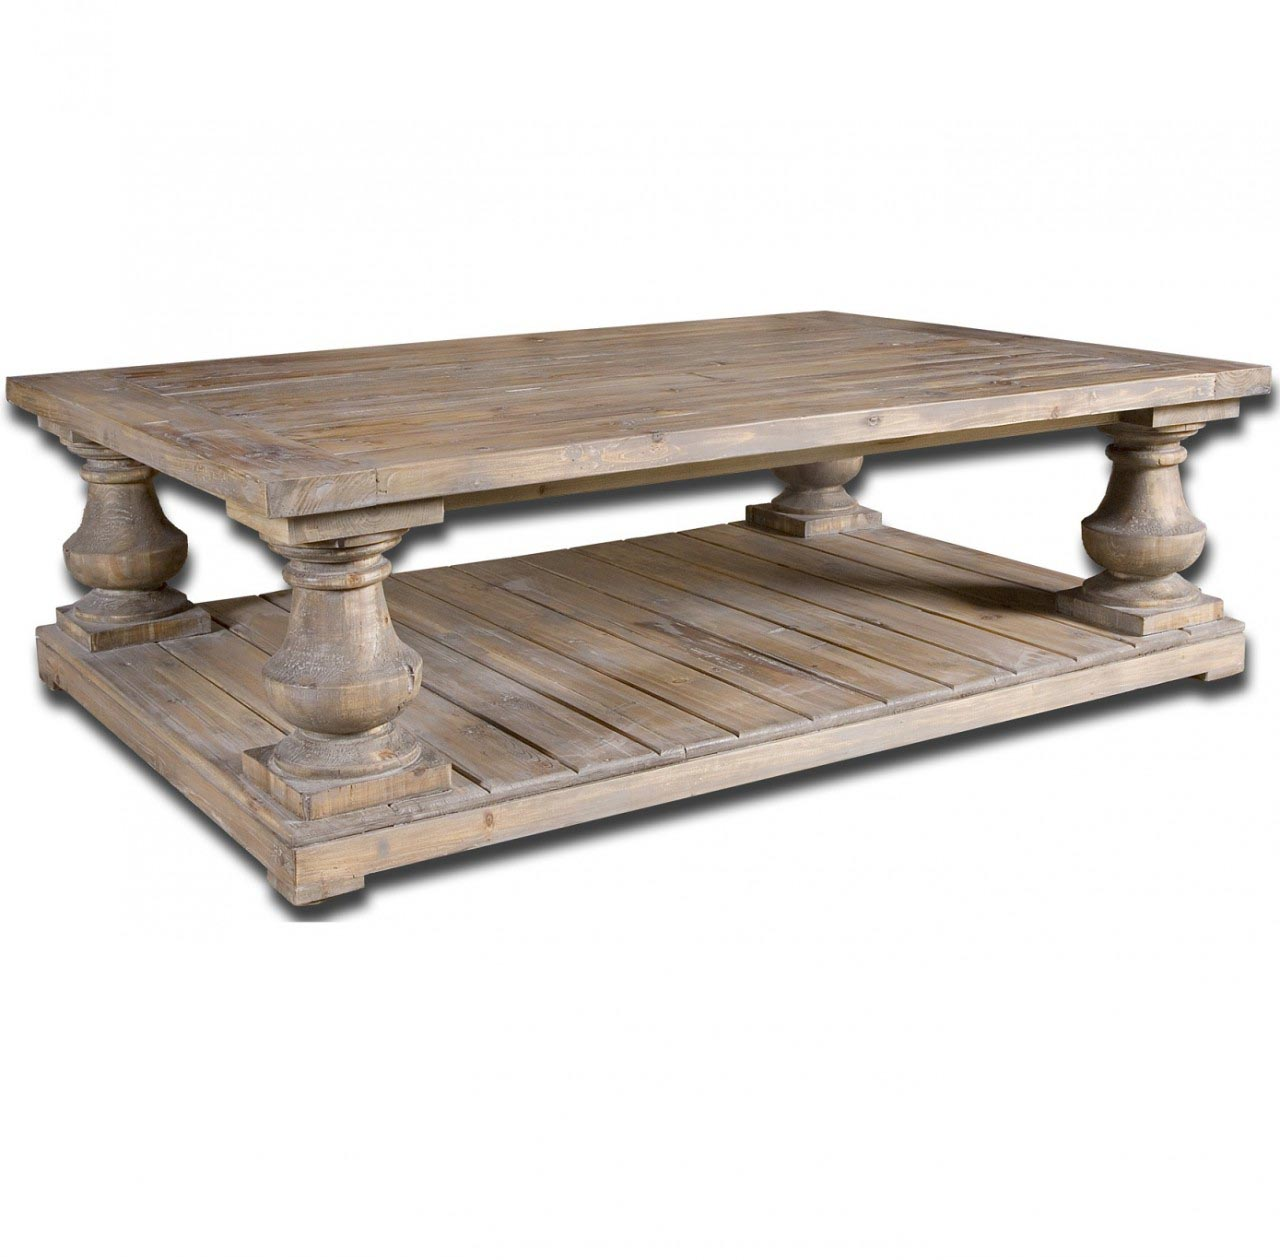 Distressed Wood Coffee Table Design Ideas